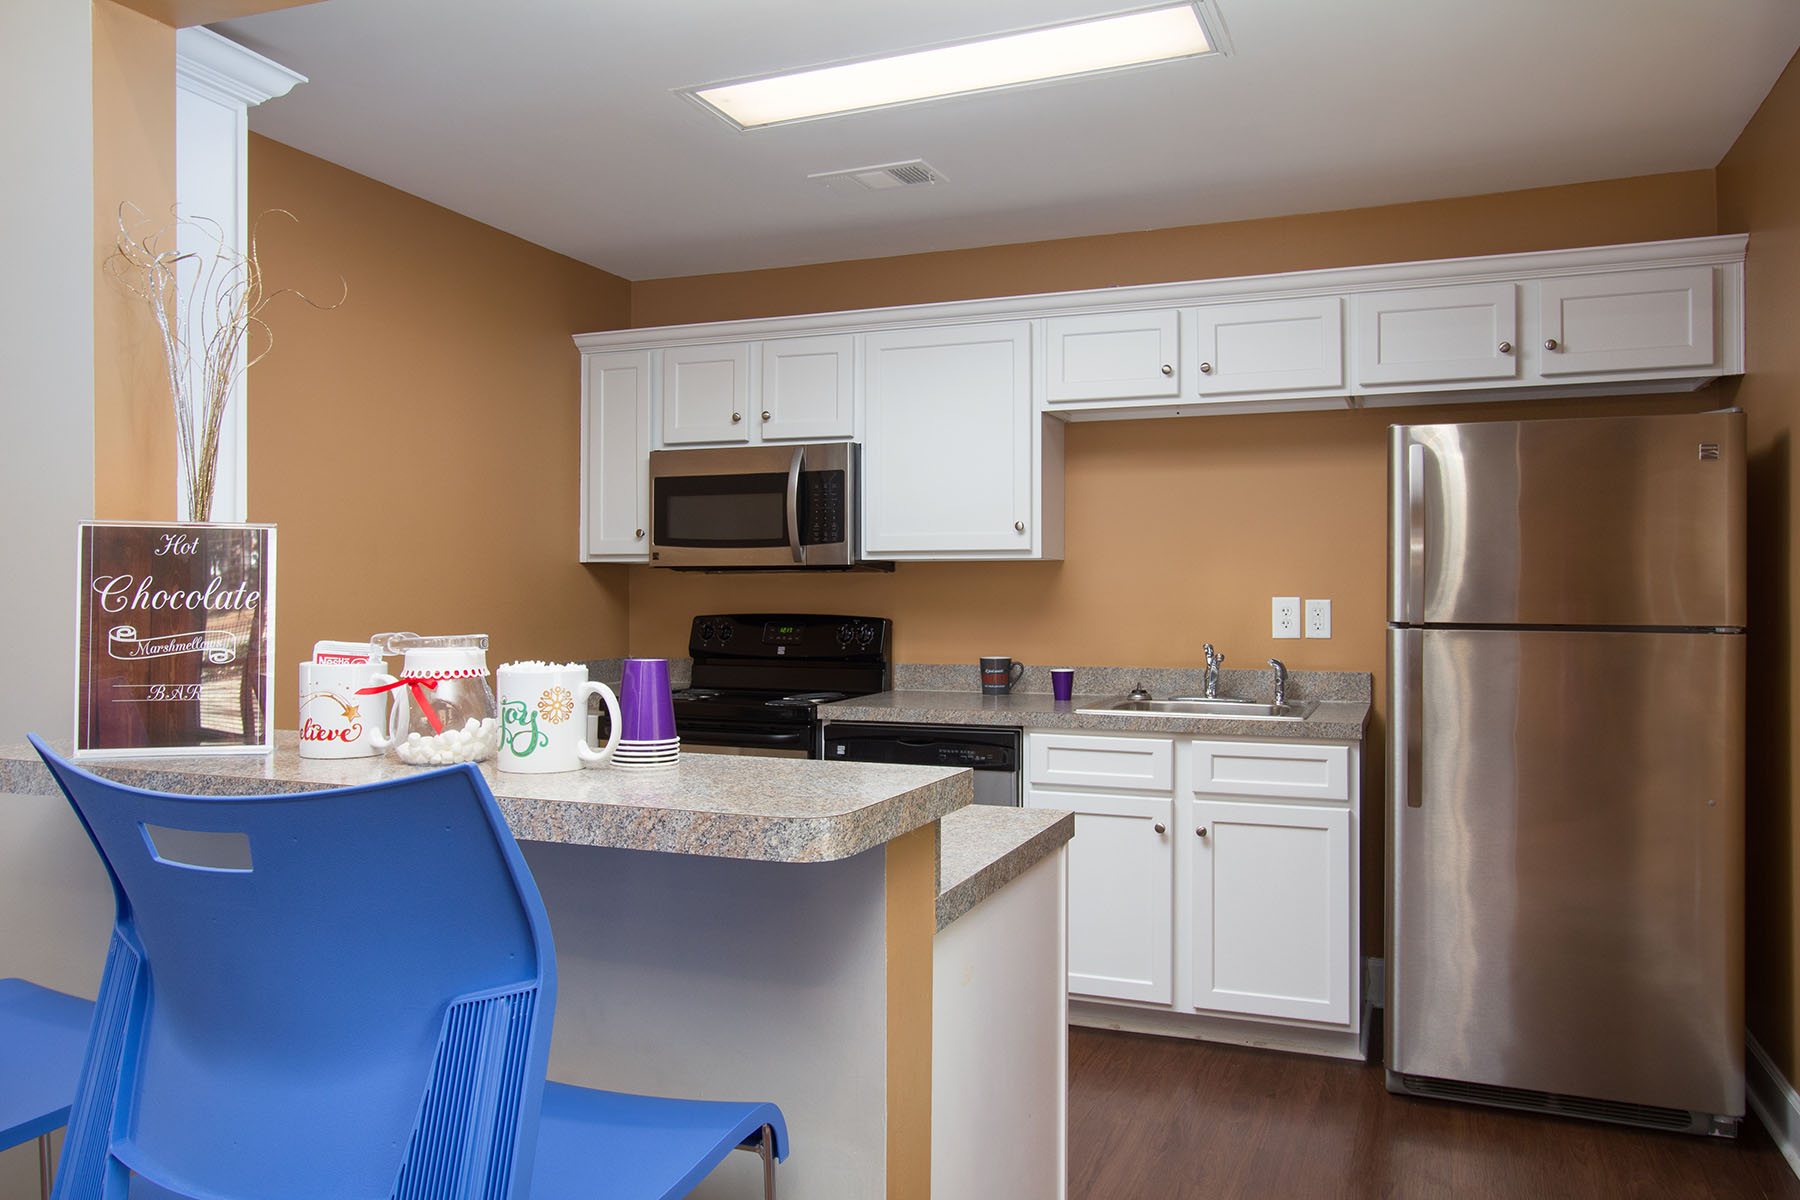 Canturbury_INT_Clubhouse_Kitchen copy.jpg